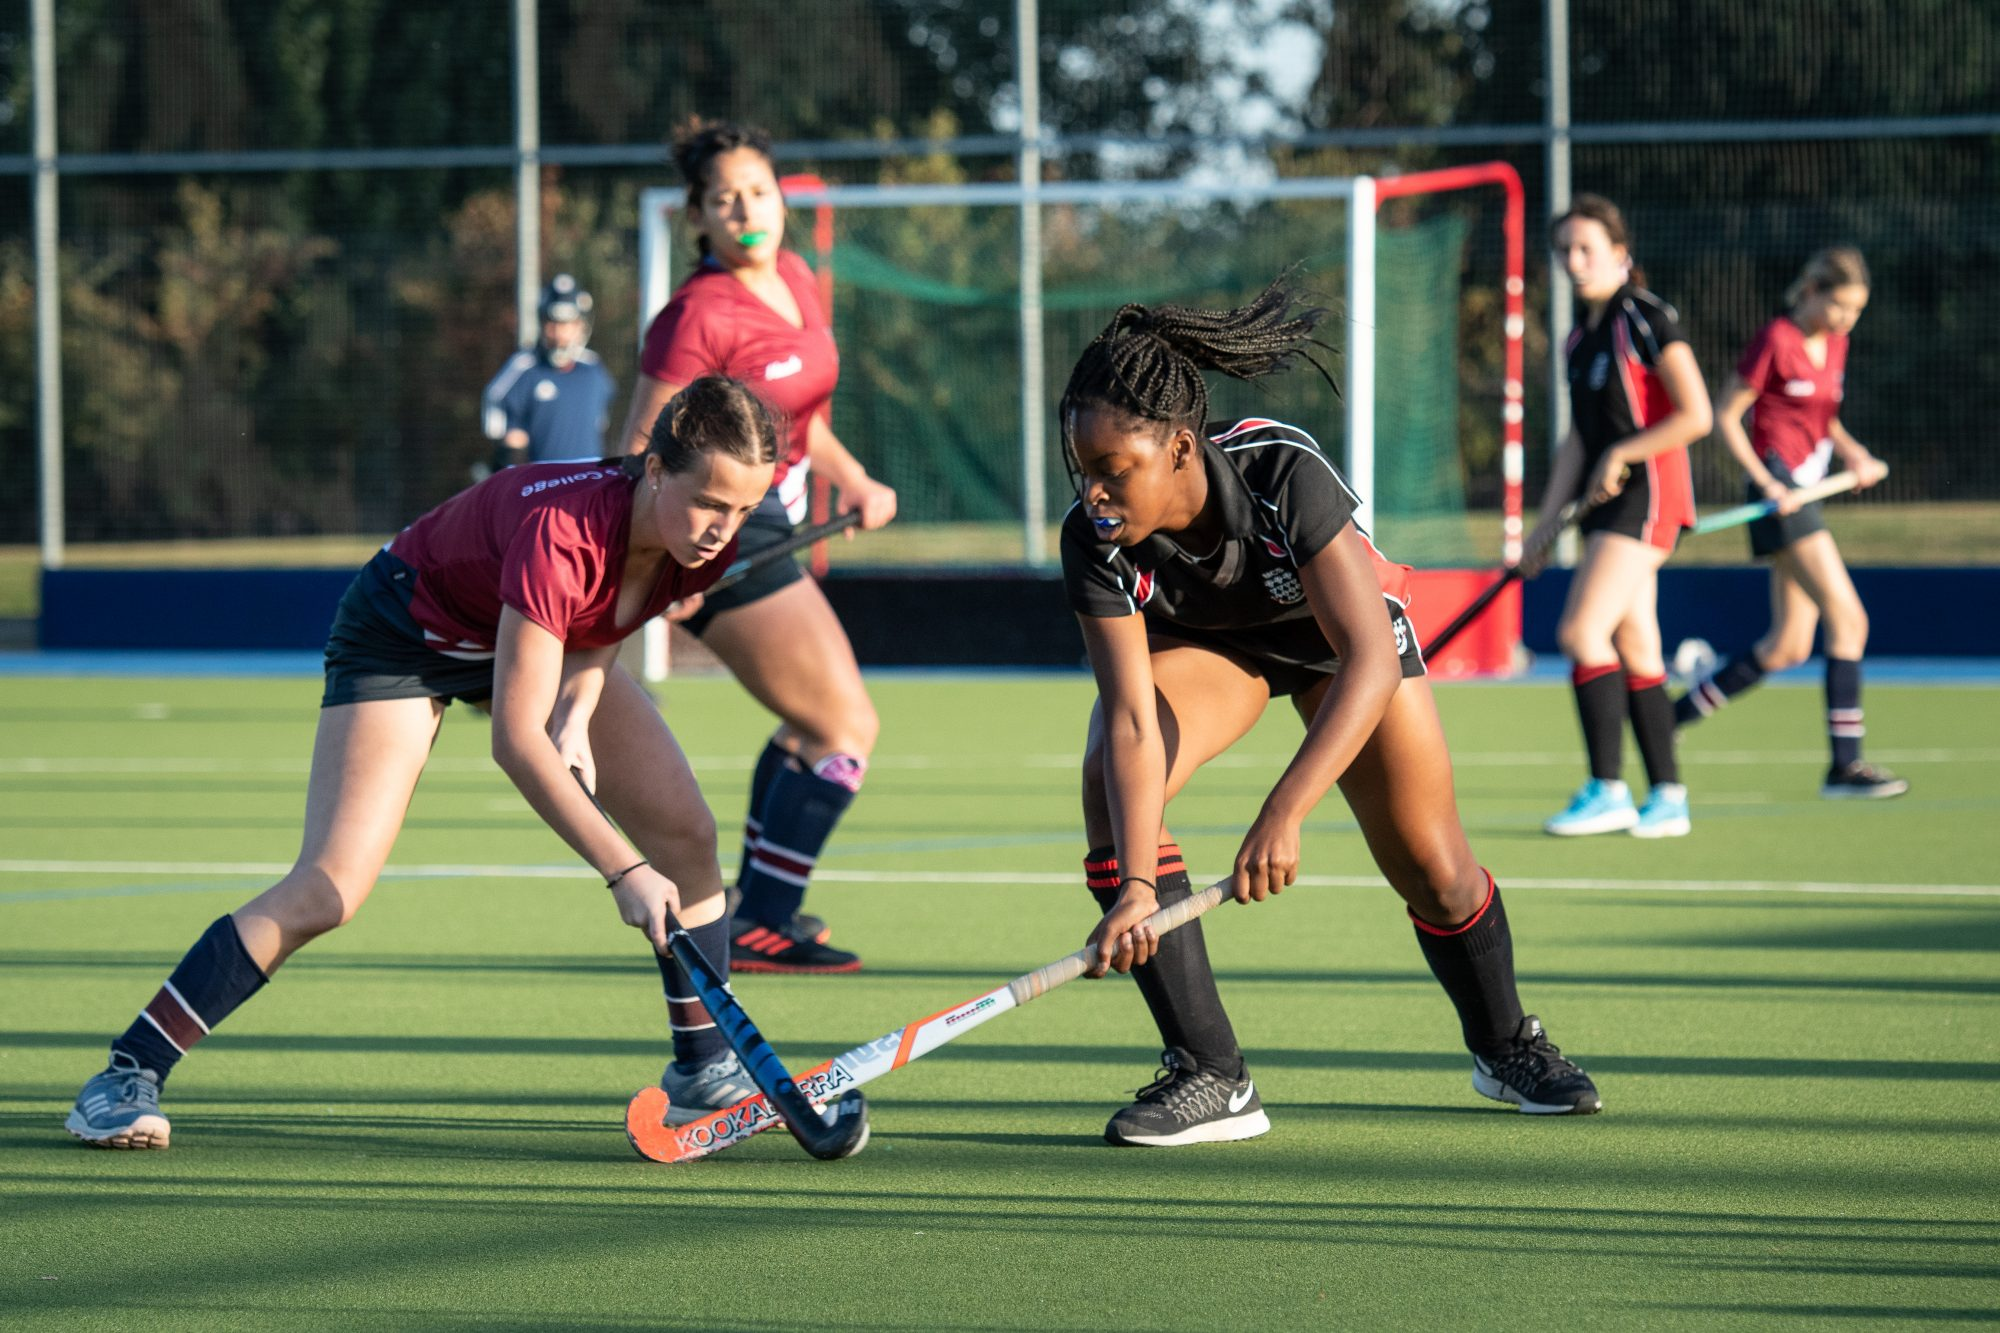 Magdalen College School Sixth Form pupils play hockey